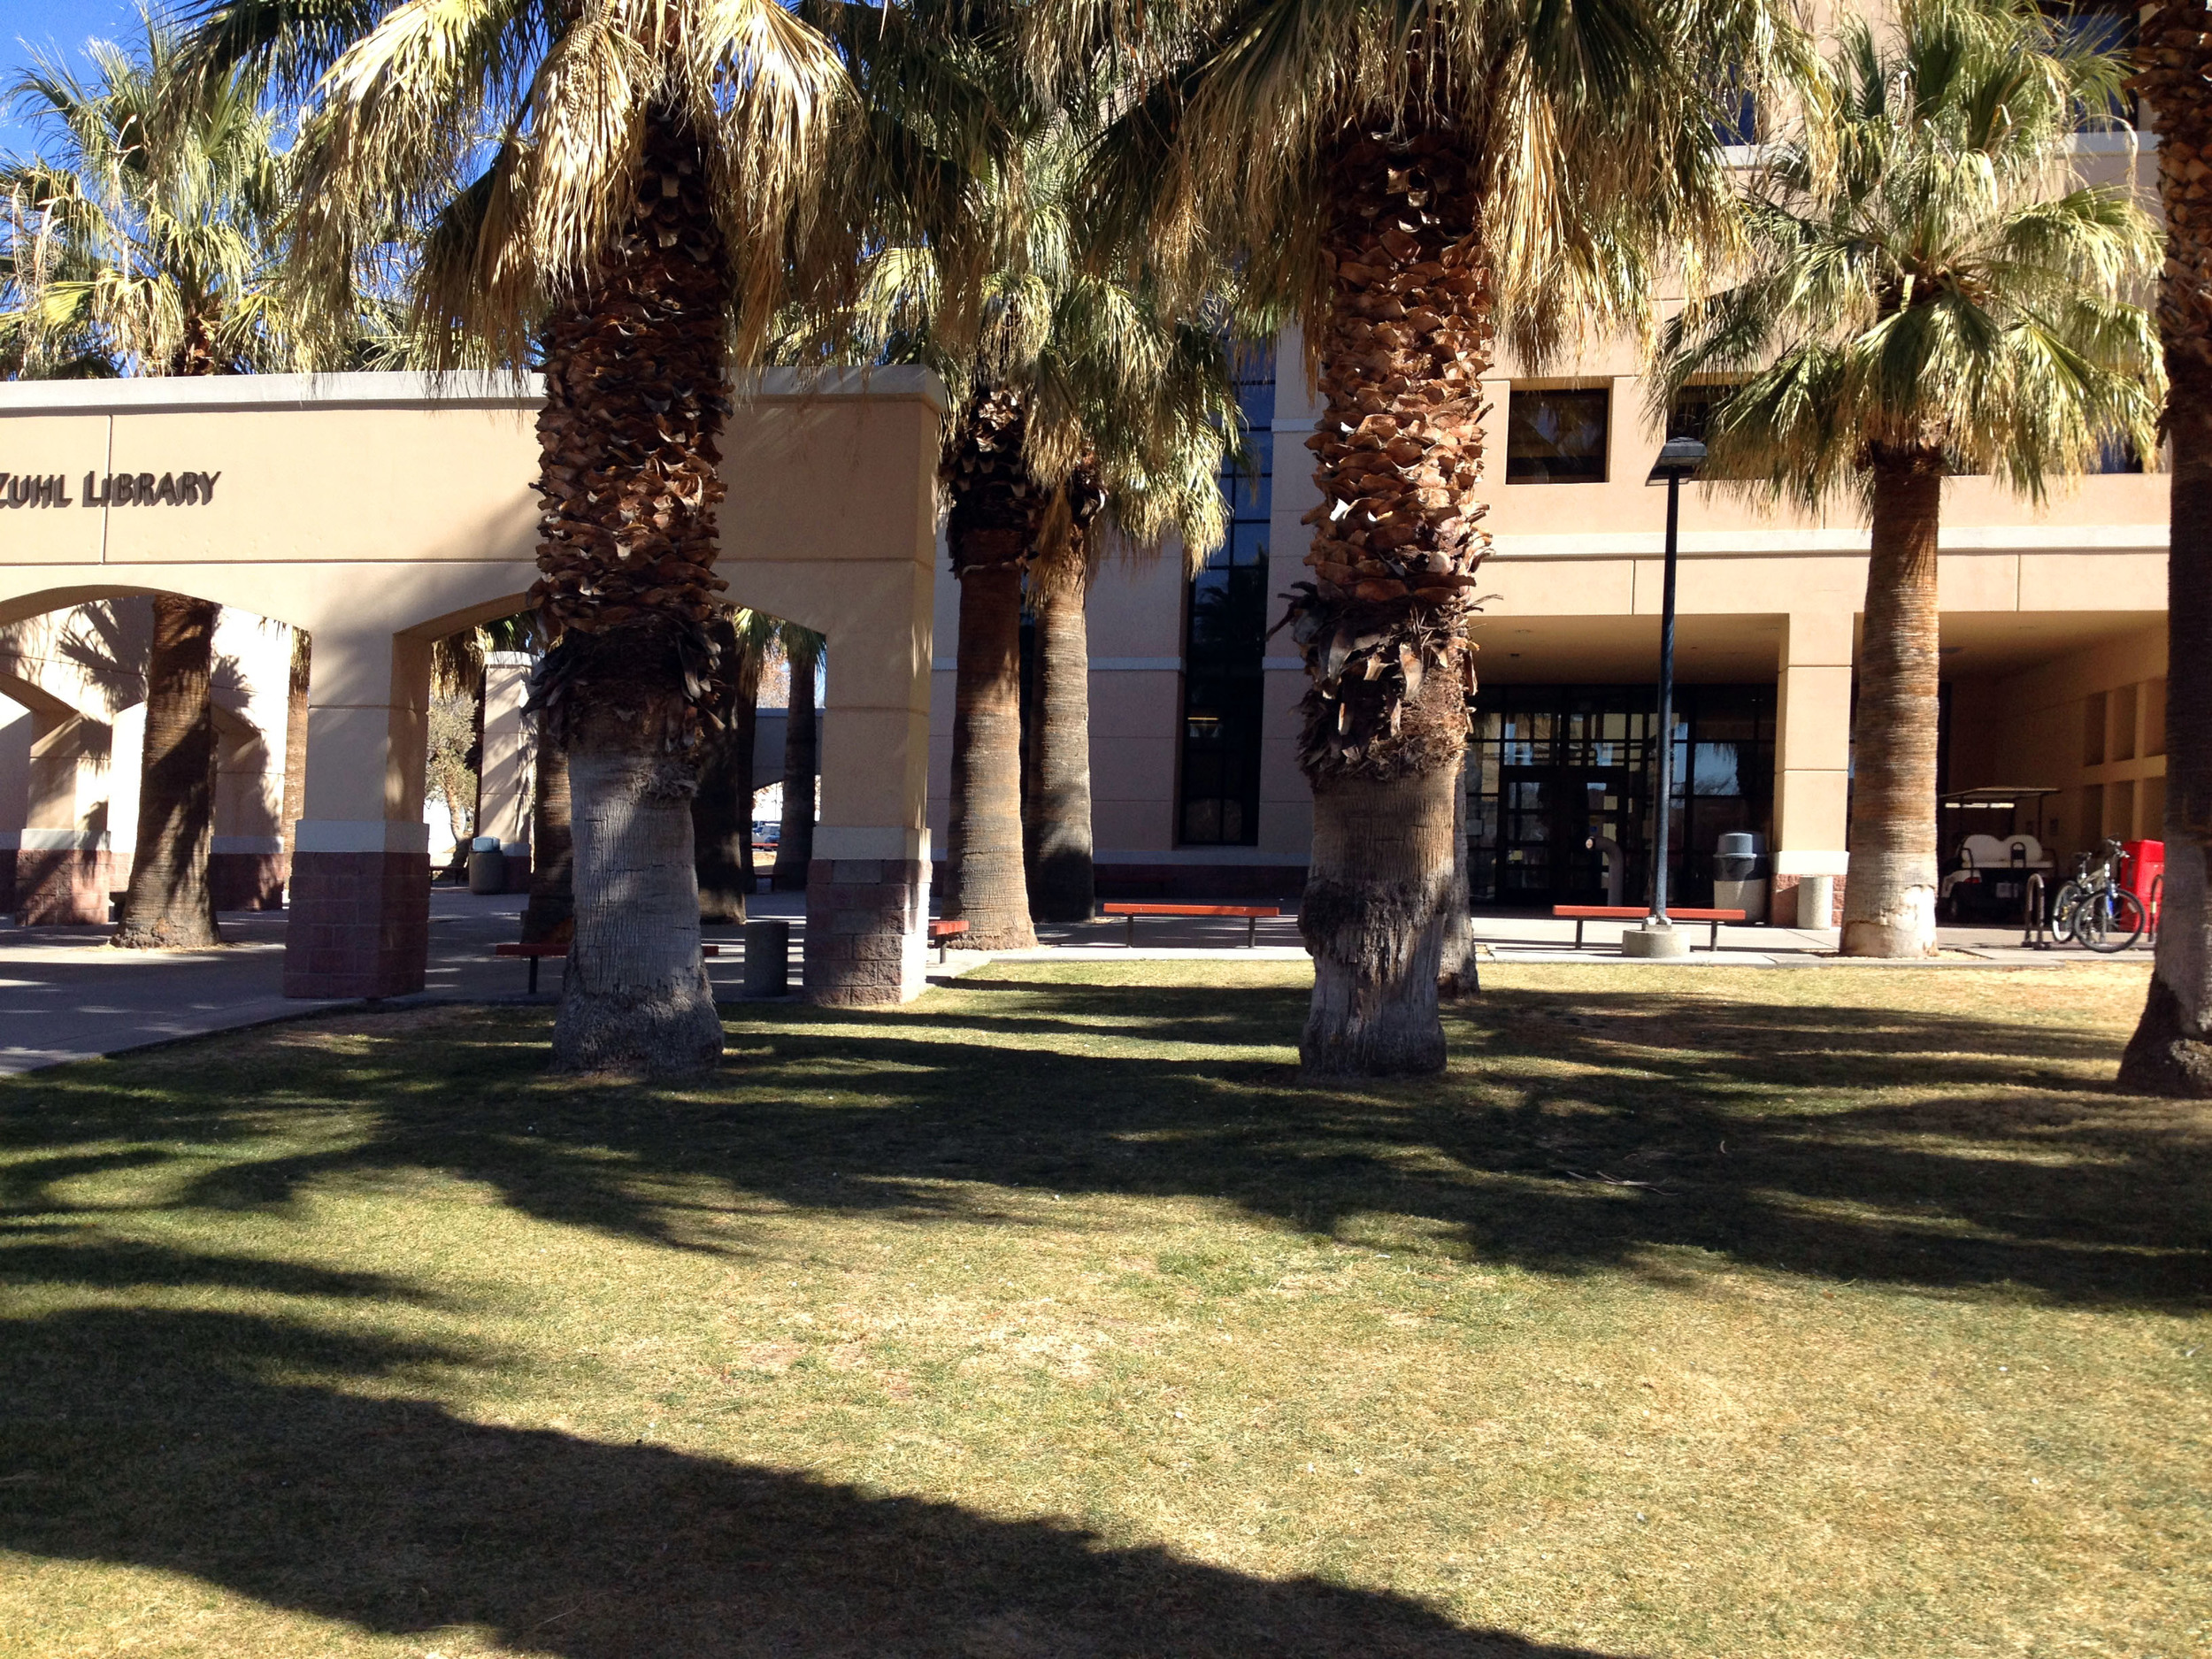 Zuhl library palm trees